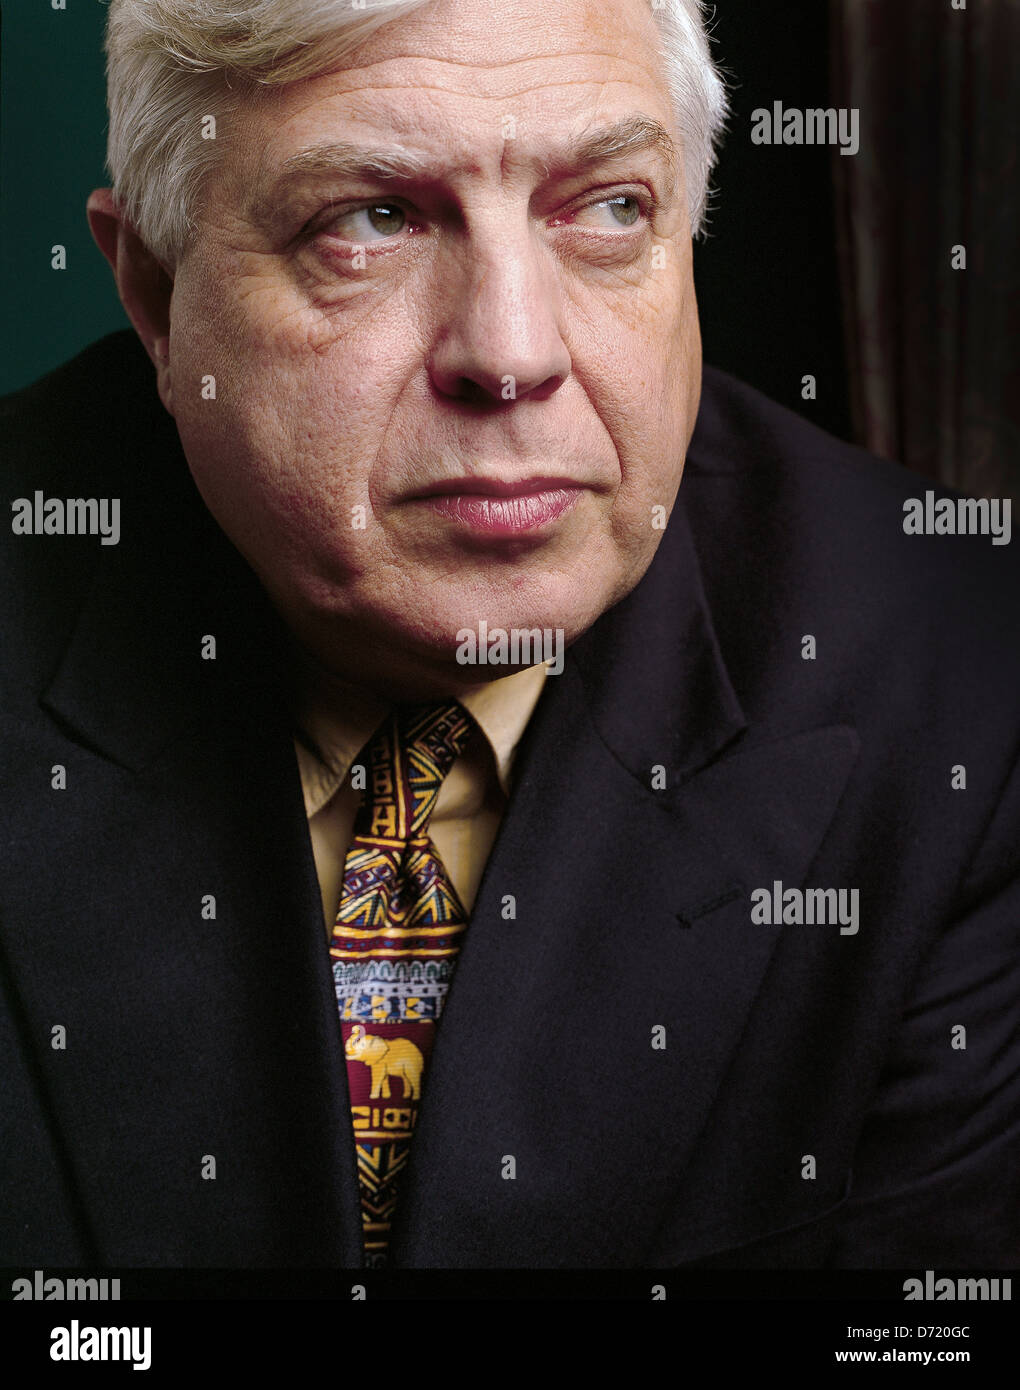 BBC World Affairs Correspondent John Simpson - Stock Image